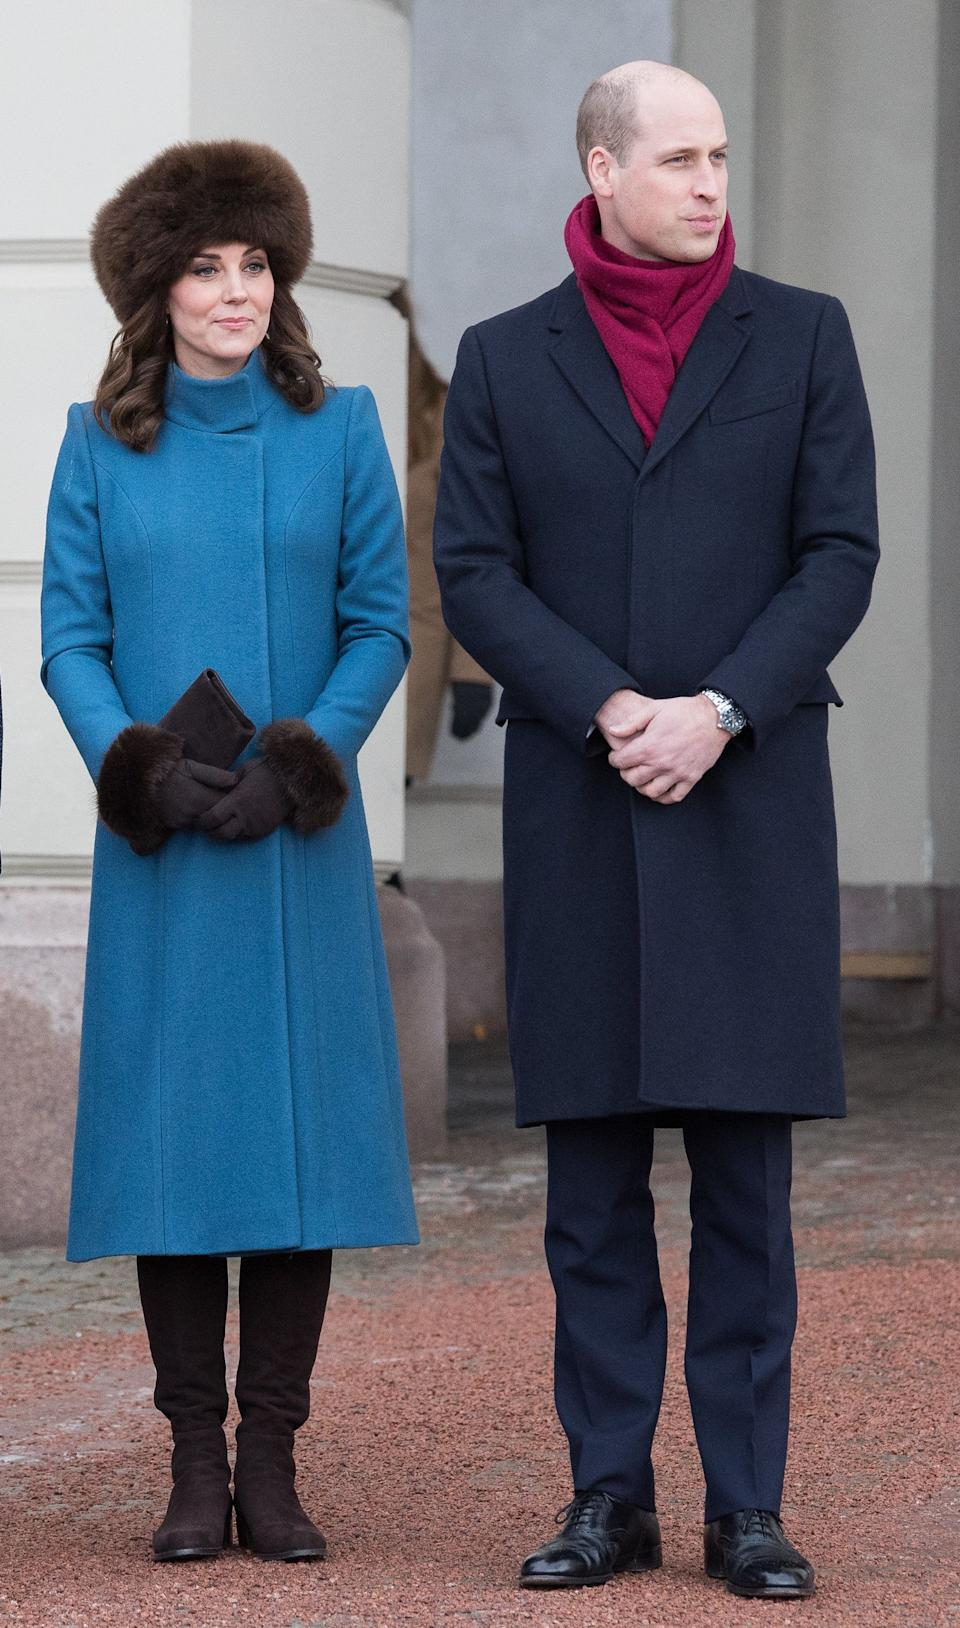 The royalsvisit the Princess Ingrid Alexandra Sculpture Park in Oslo, Norway, on Feb. 1.